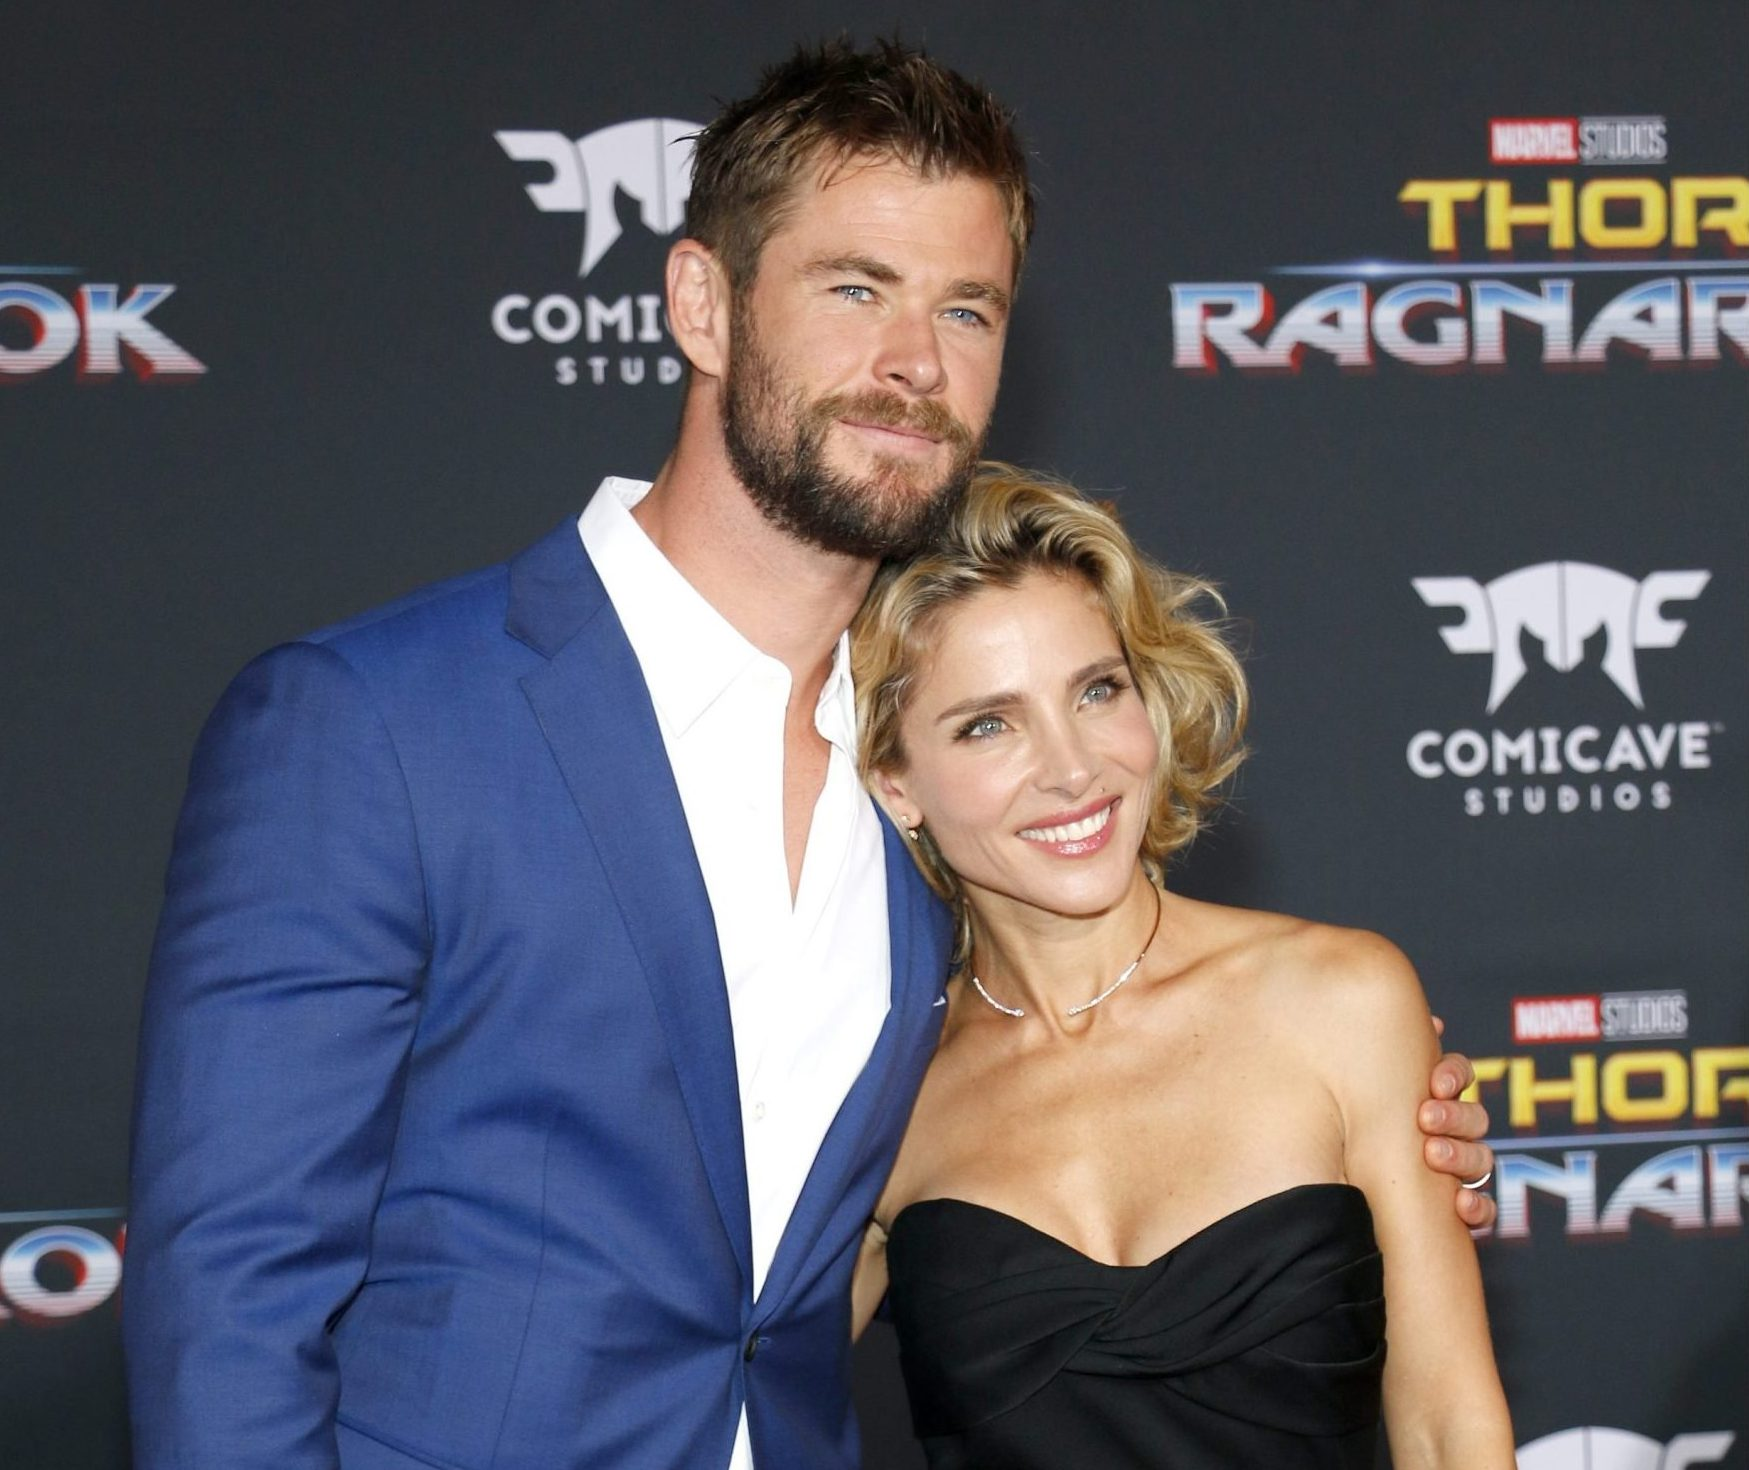 """Chris Hemsworth and Elsa Pataky attend a red carpet event. He wears a blue suit and white shirt. She wears a strapless black dress. They lean into one another and have one arm around each other. They are both smiling. The background is black and reads """"Thor Ragnarok""""."""